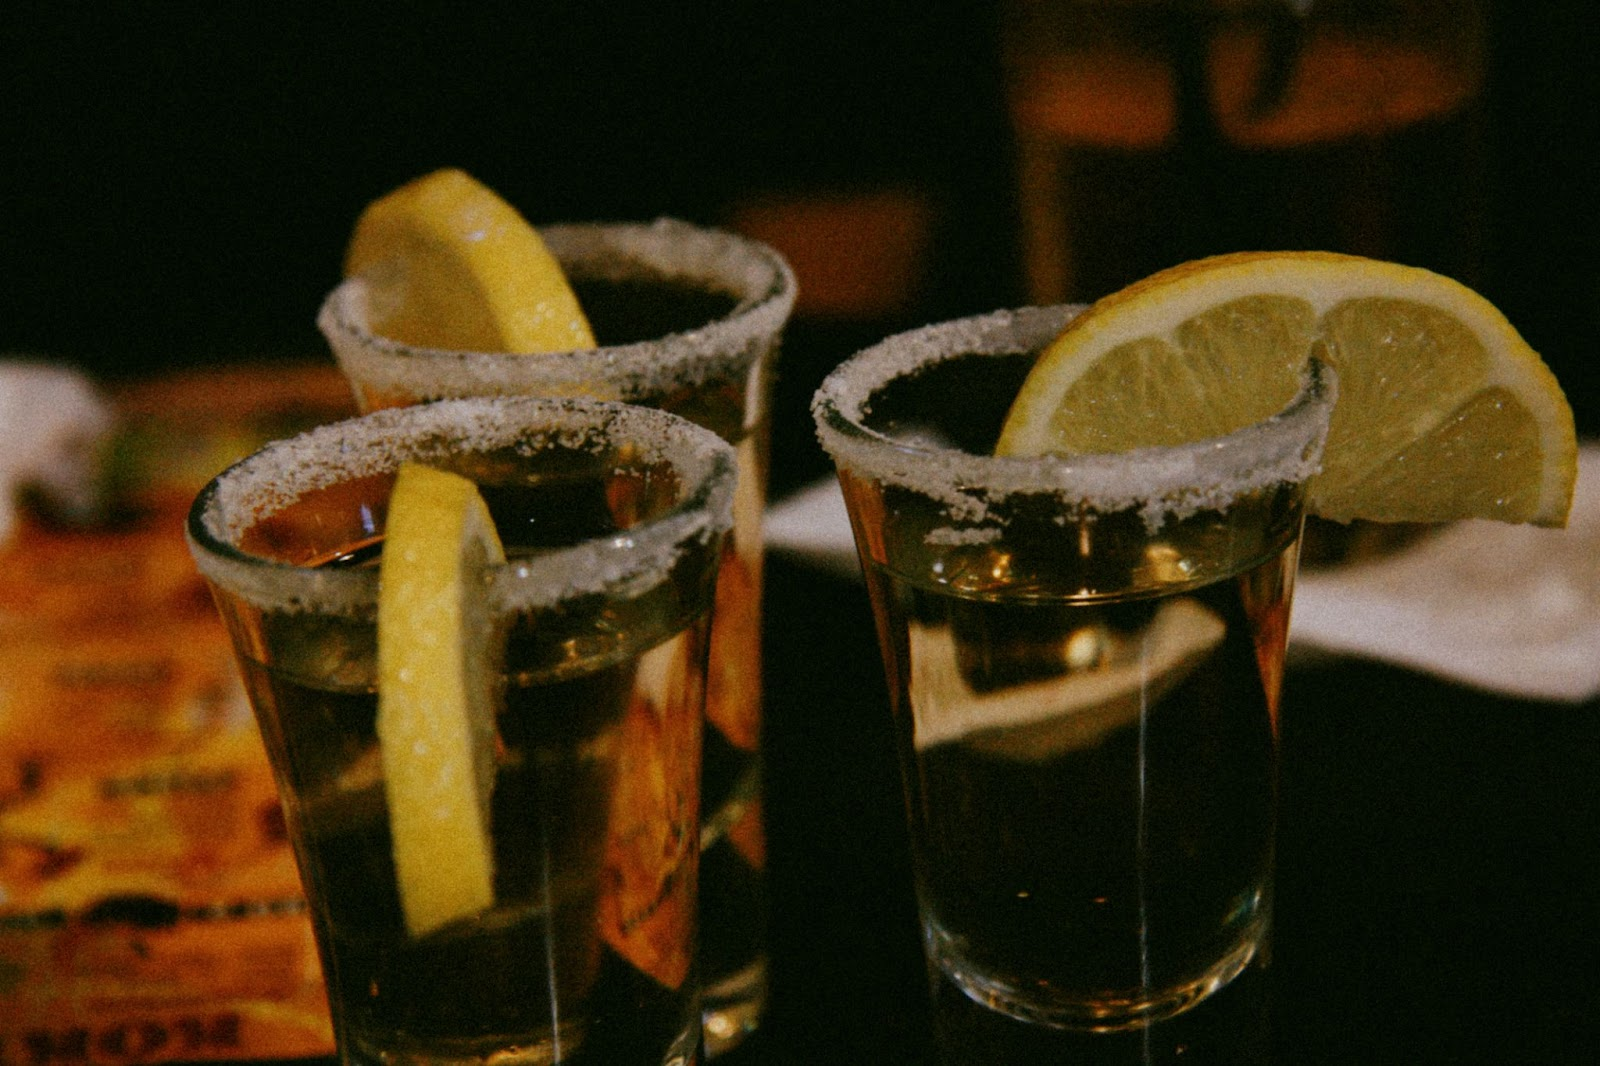 Three shot glasses filled with coconut tequila, and lemon wedges.